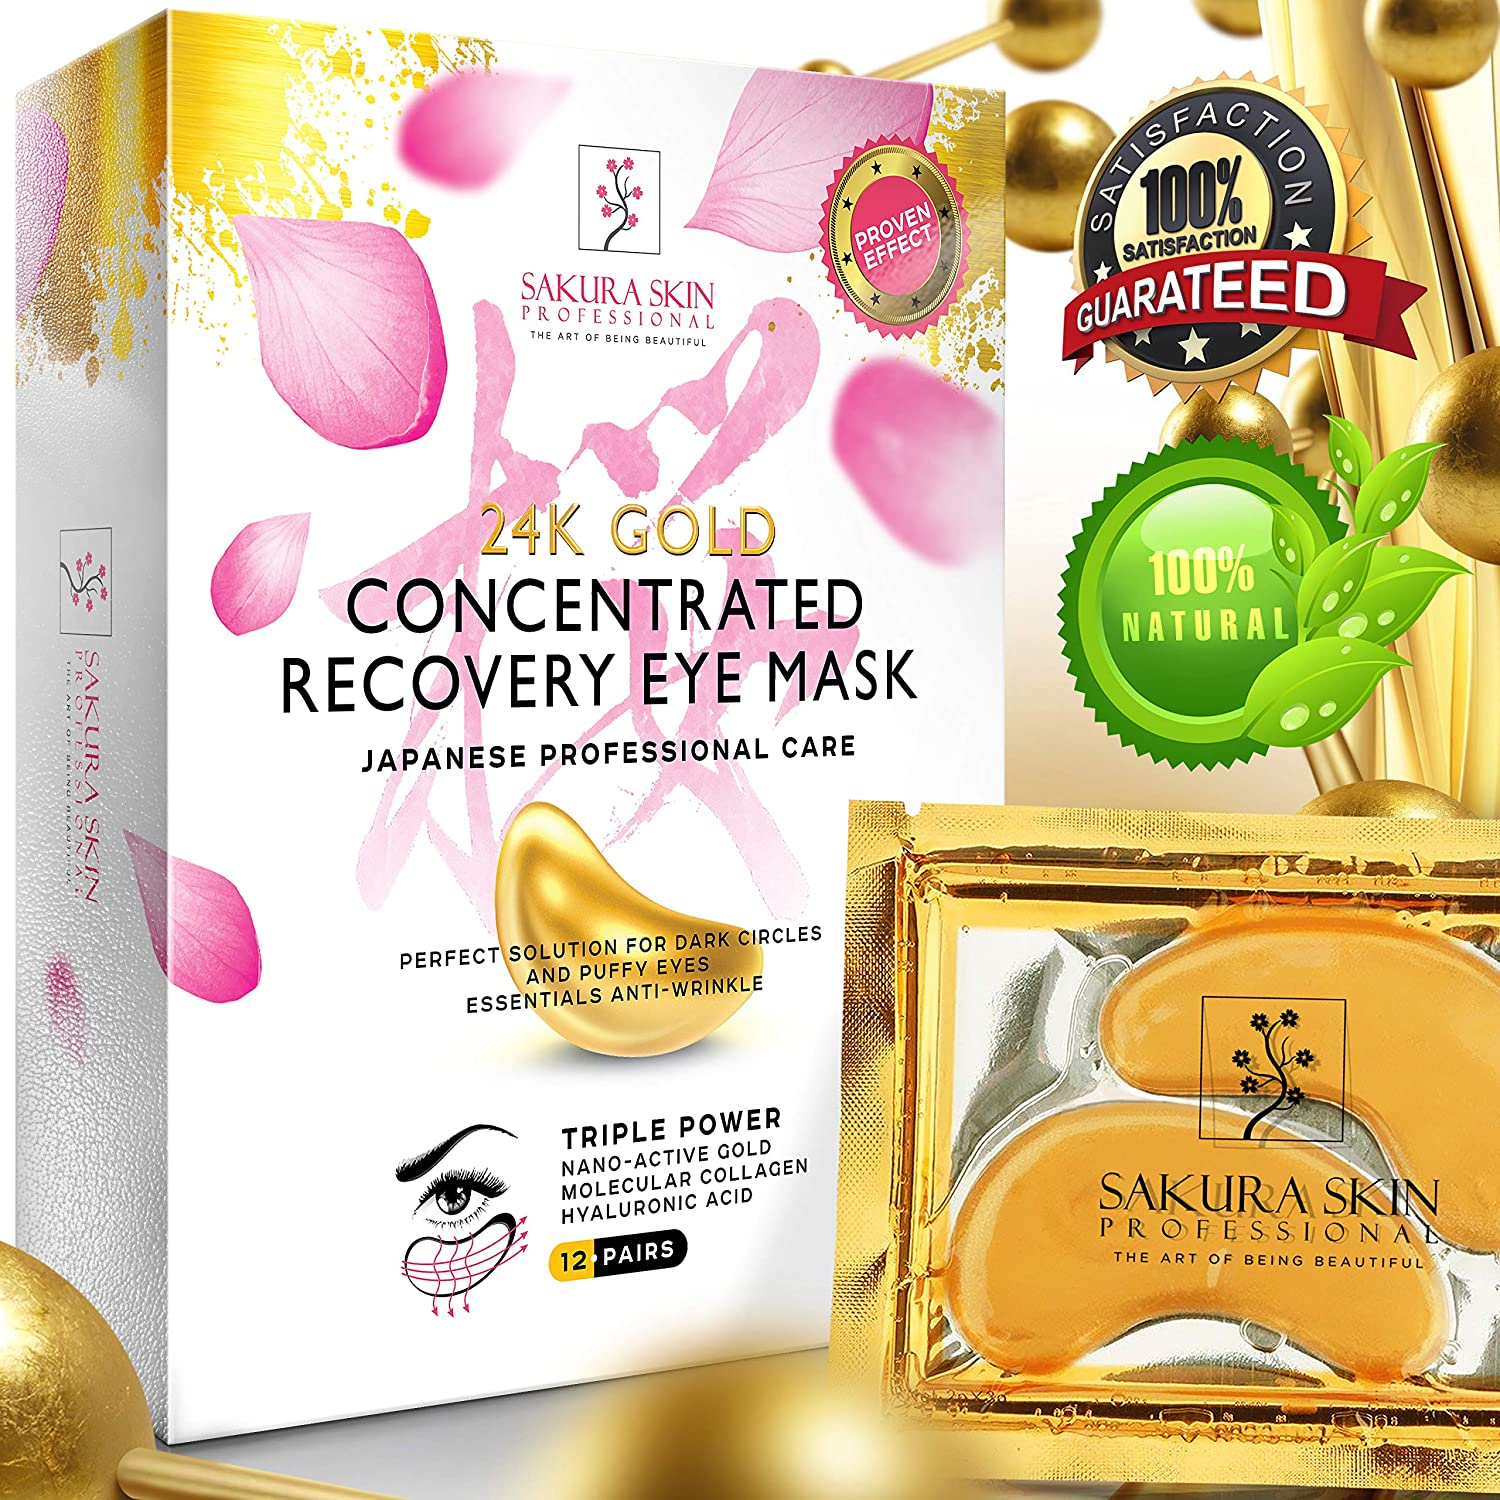 SWISSÖKOLAB Under Eye Mask Gold Eye Mask Anti-Aging Hyaluronic Acid 24k Gold Eye Patches Collagen Face Care Under Eye Pads Treatment Moisturizing Reducing Dark Circles Puffiness Wrinkles Men Women